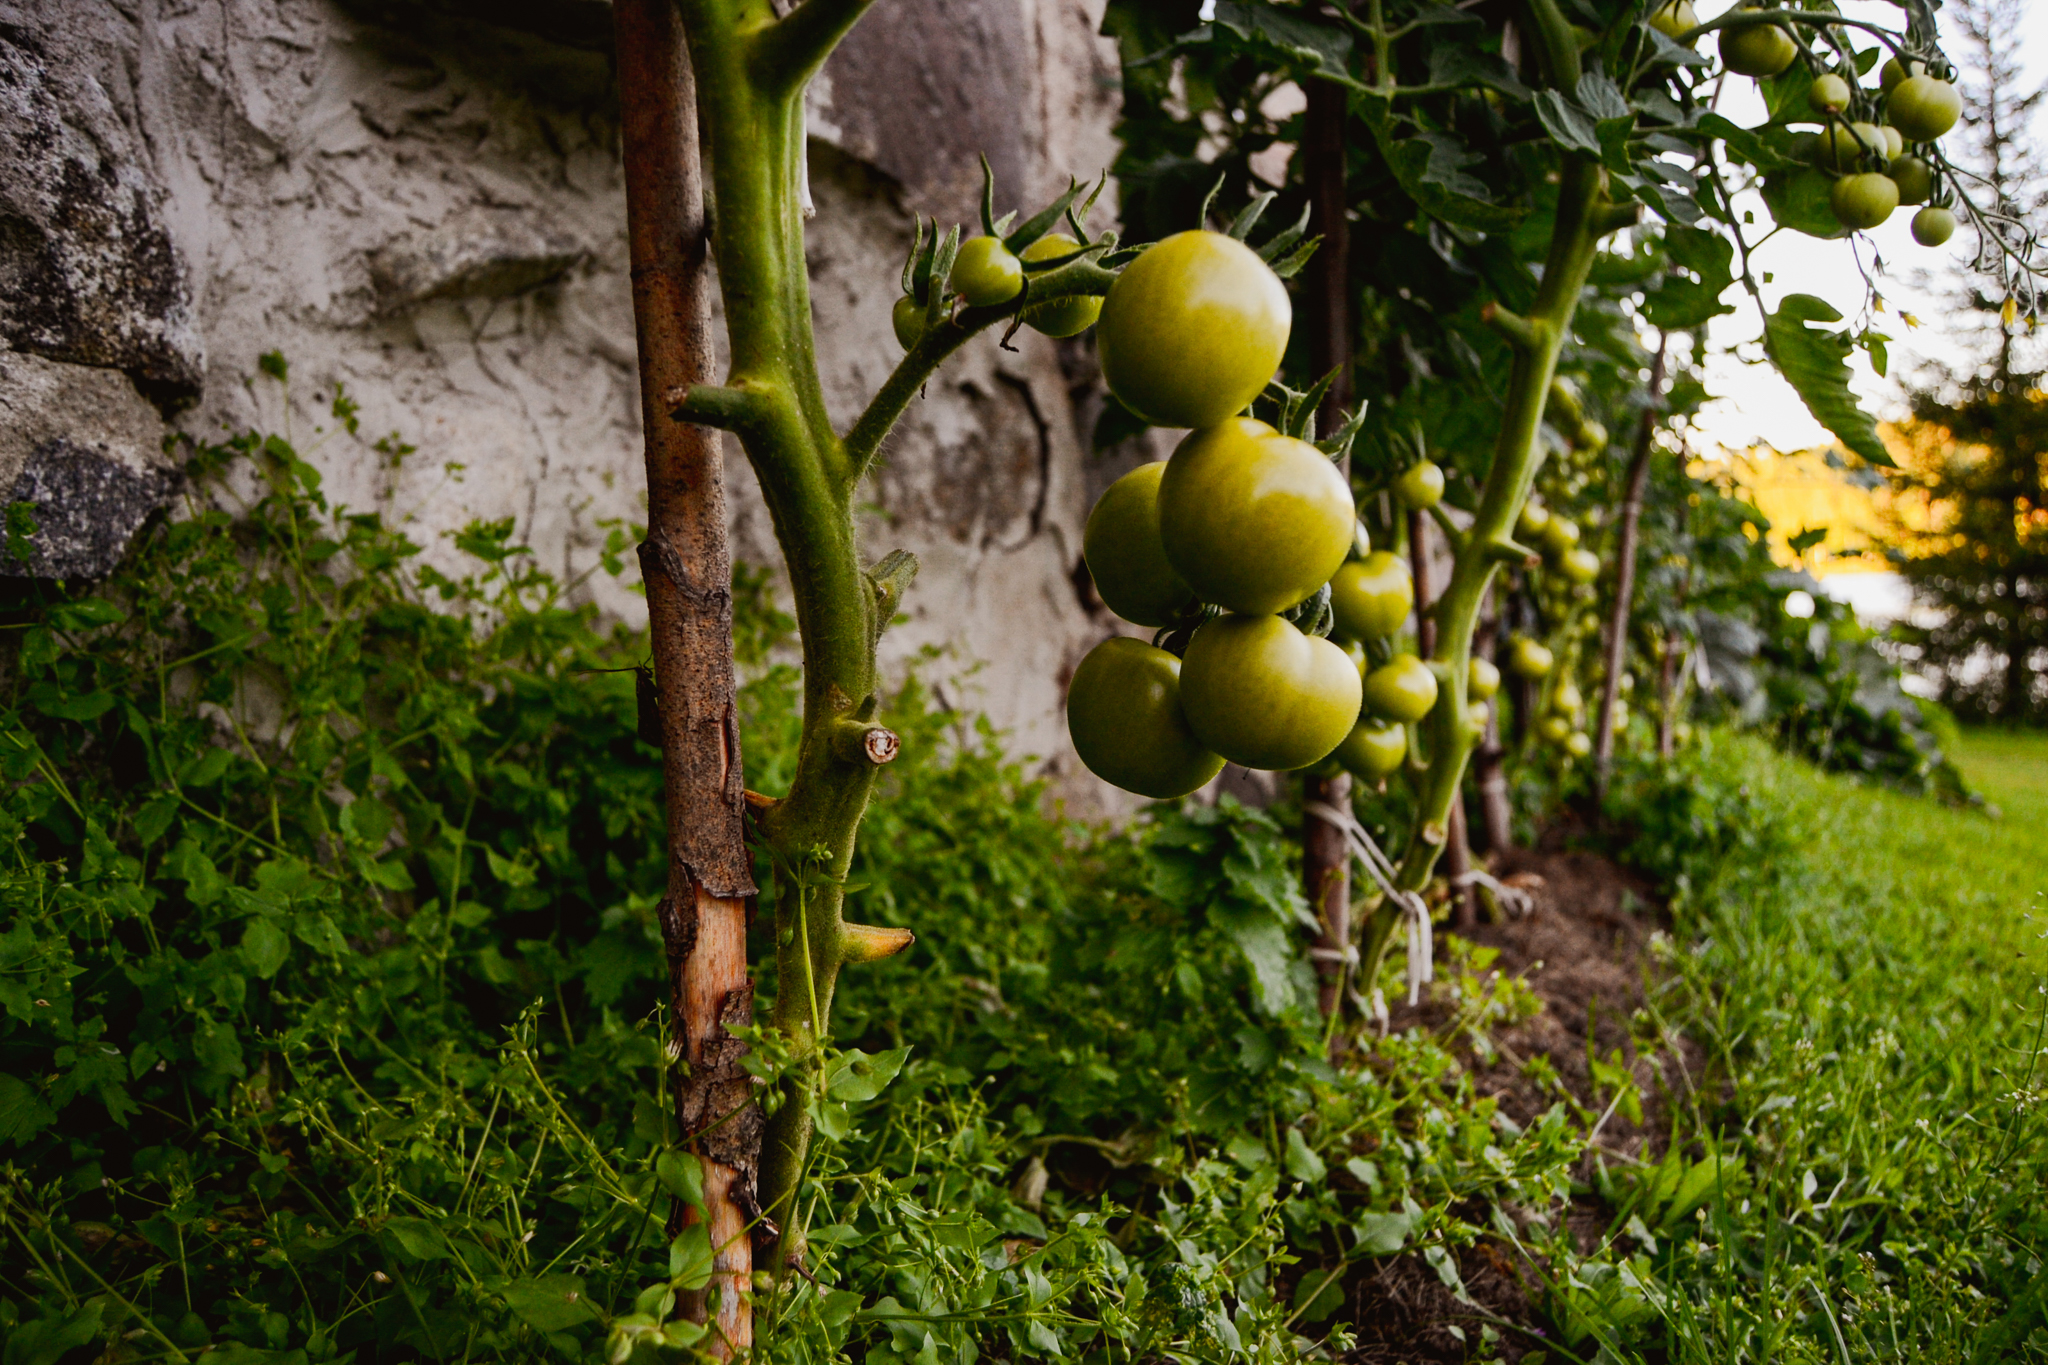 Tomatoes growing in the Finnish garden on calm summer evening